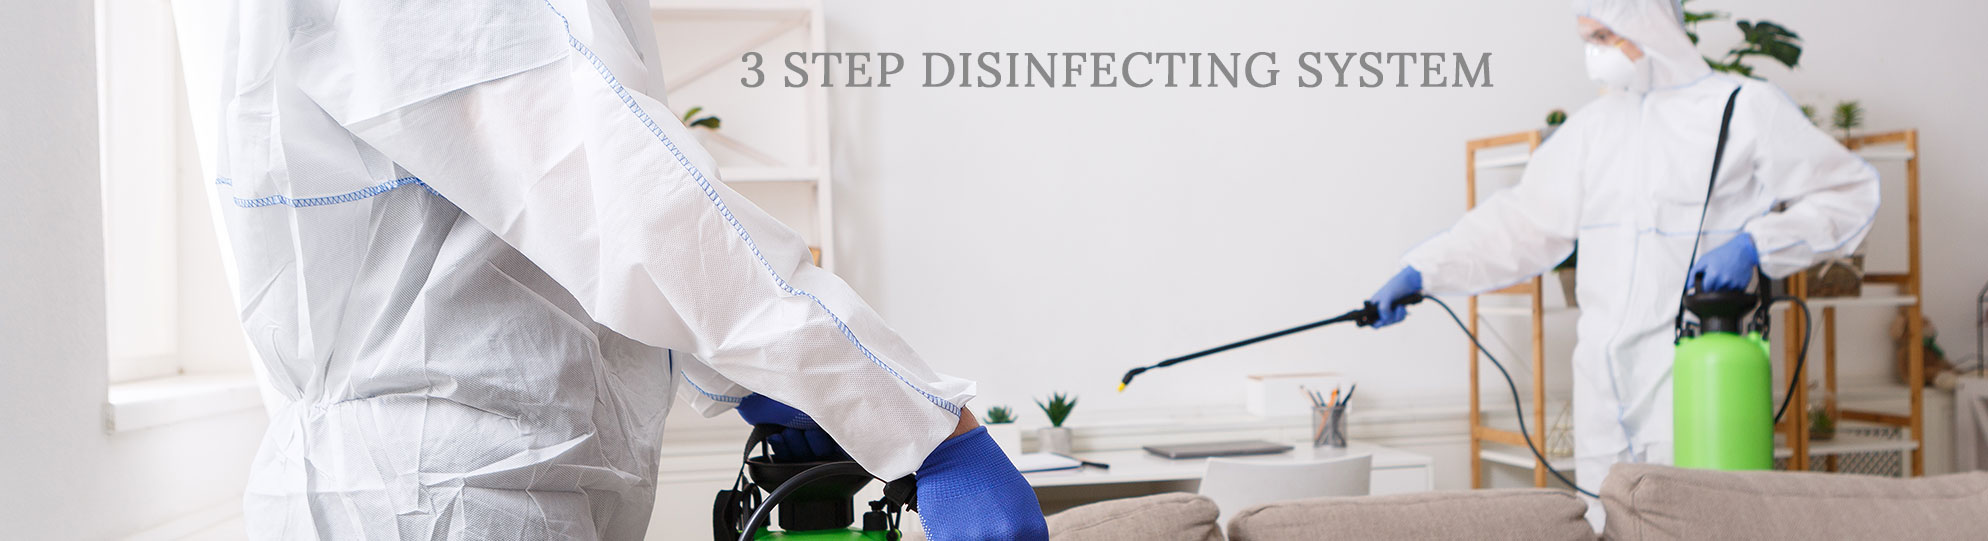 home-image-disinfecting